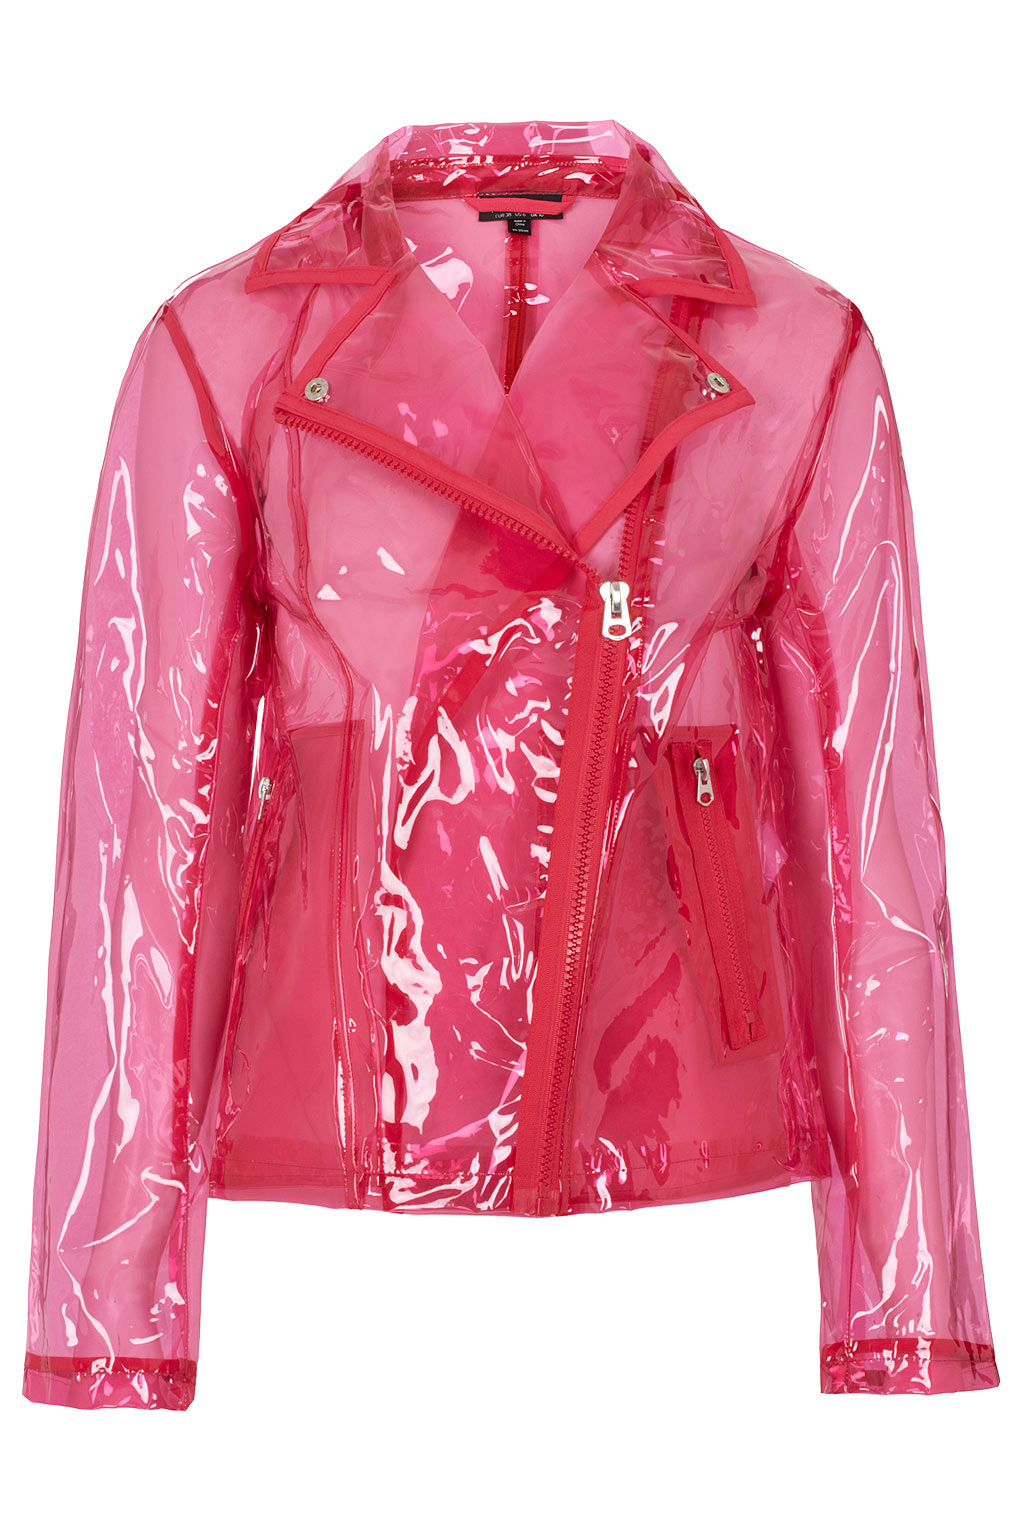 Lyst Topshop Pink Clear Plastic Jacket In Pink